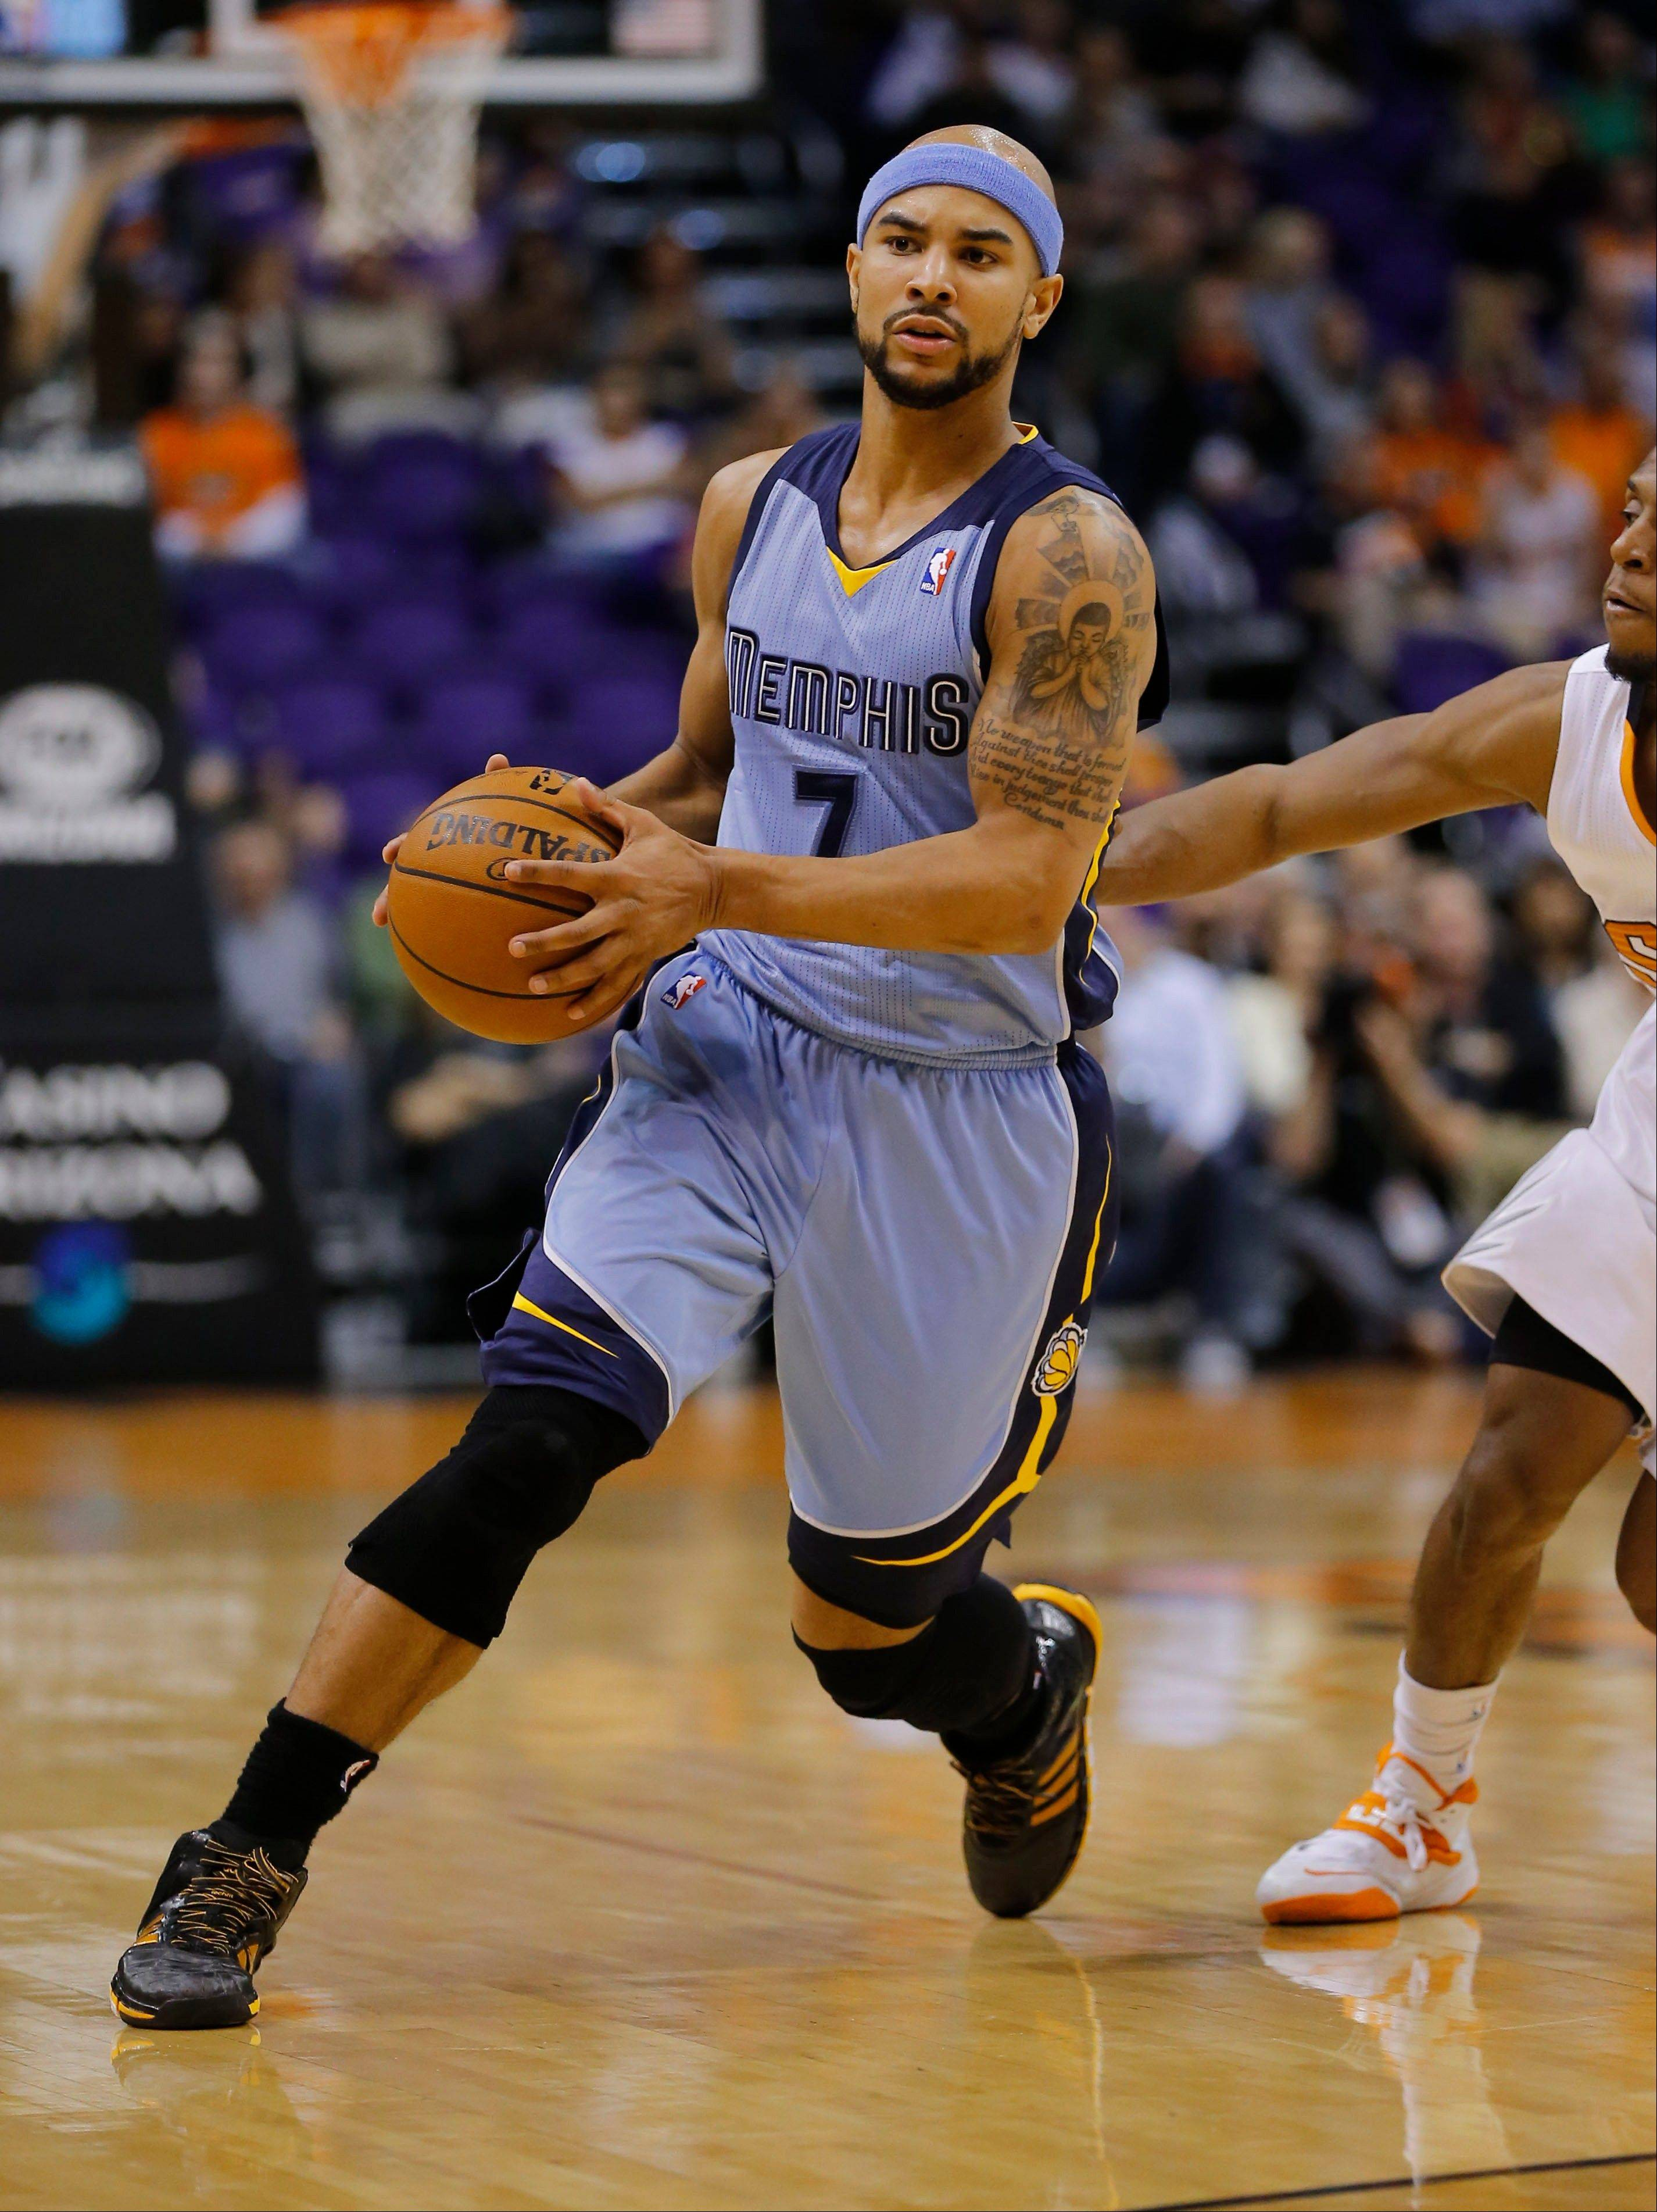 The Memphis Grizzlies' Jerryd Bayless (7) drives past Phoenix Suns' Gerald Green during the first half of a game last week in Phoenix. The Memphis Grizzlies have acquired guard Courtney Lee and have sent Bayless to the Boston Celtics as part of a three-team trade that also includes the Oklahoma City Thunder.